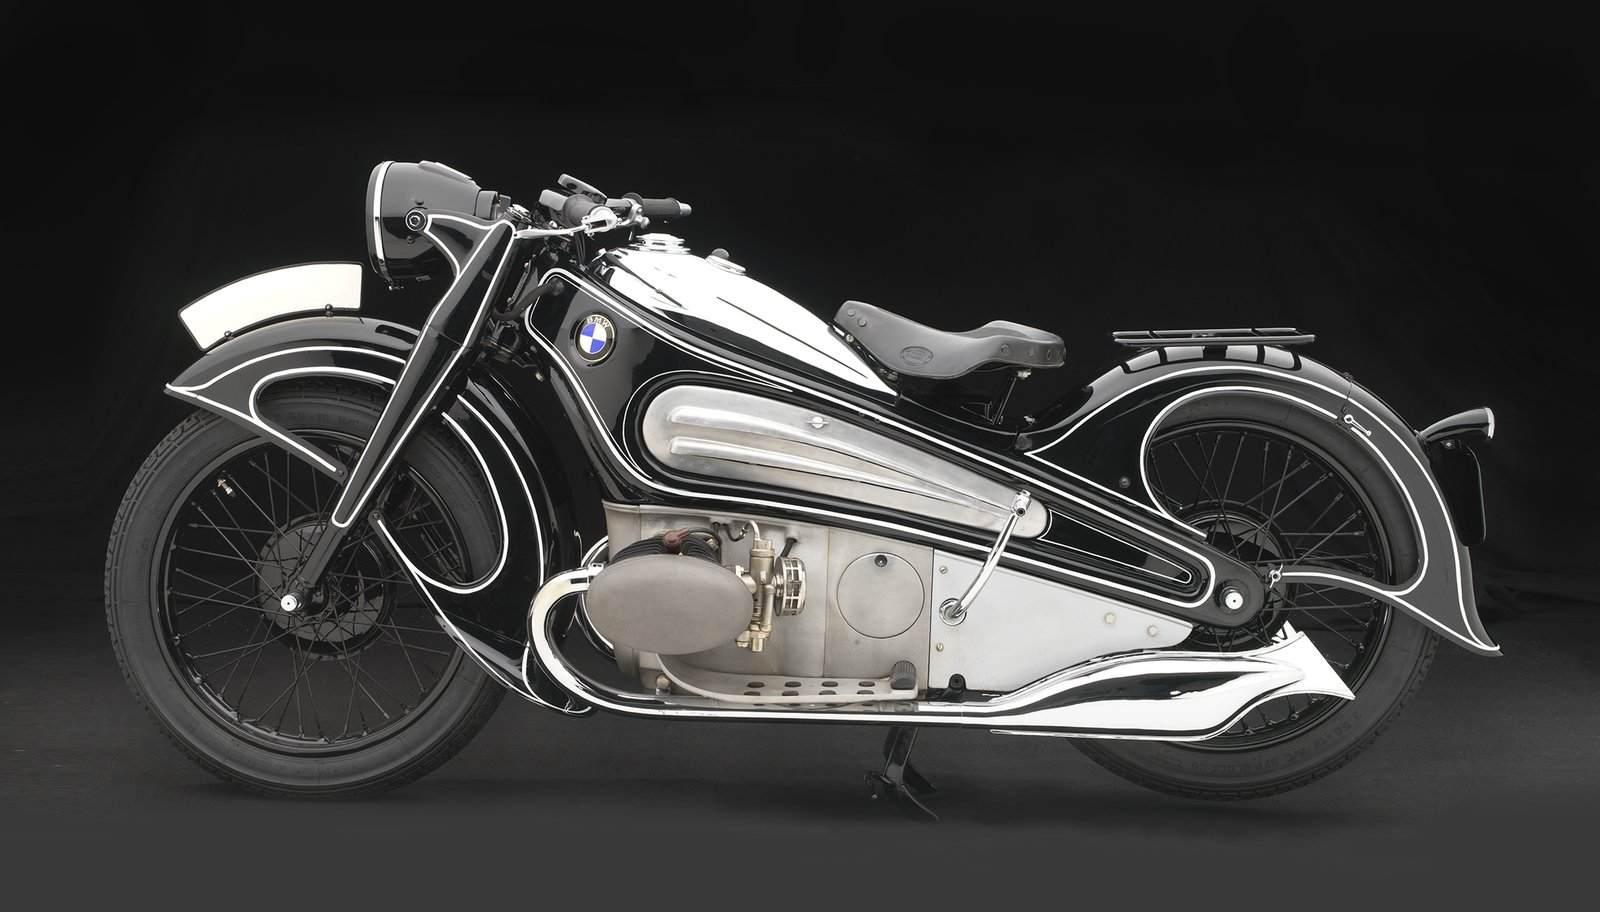 1934 BMW R7 Concept Motorcycle, BMW Classic Collection  Photo 9 of 15 in Examining the Architecture of the Art Deco Automobile